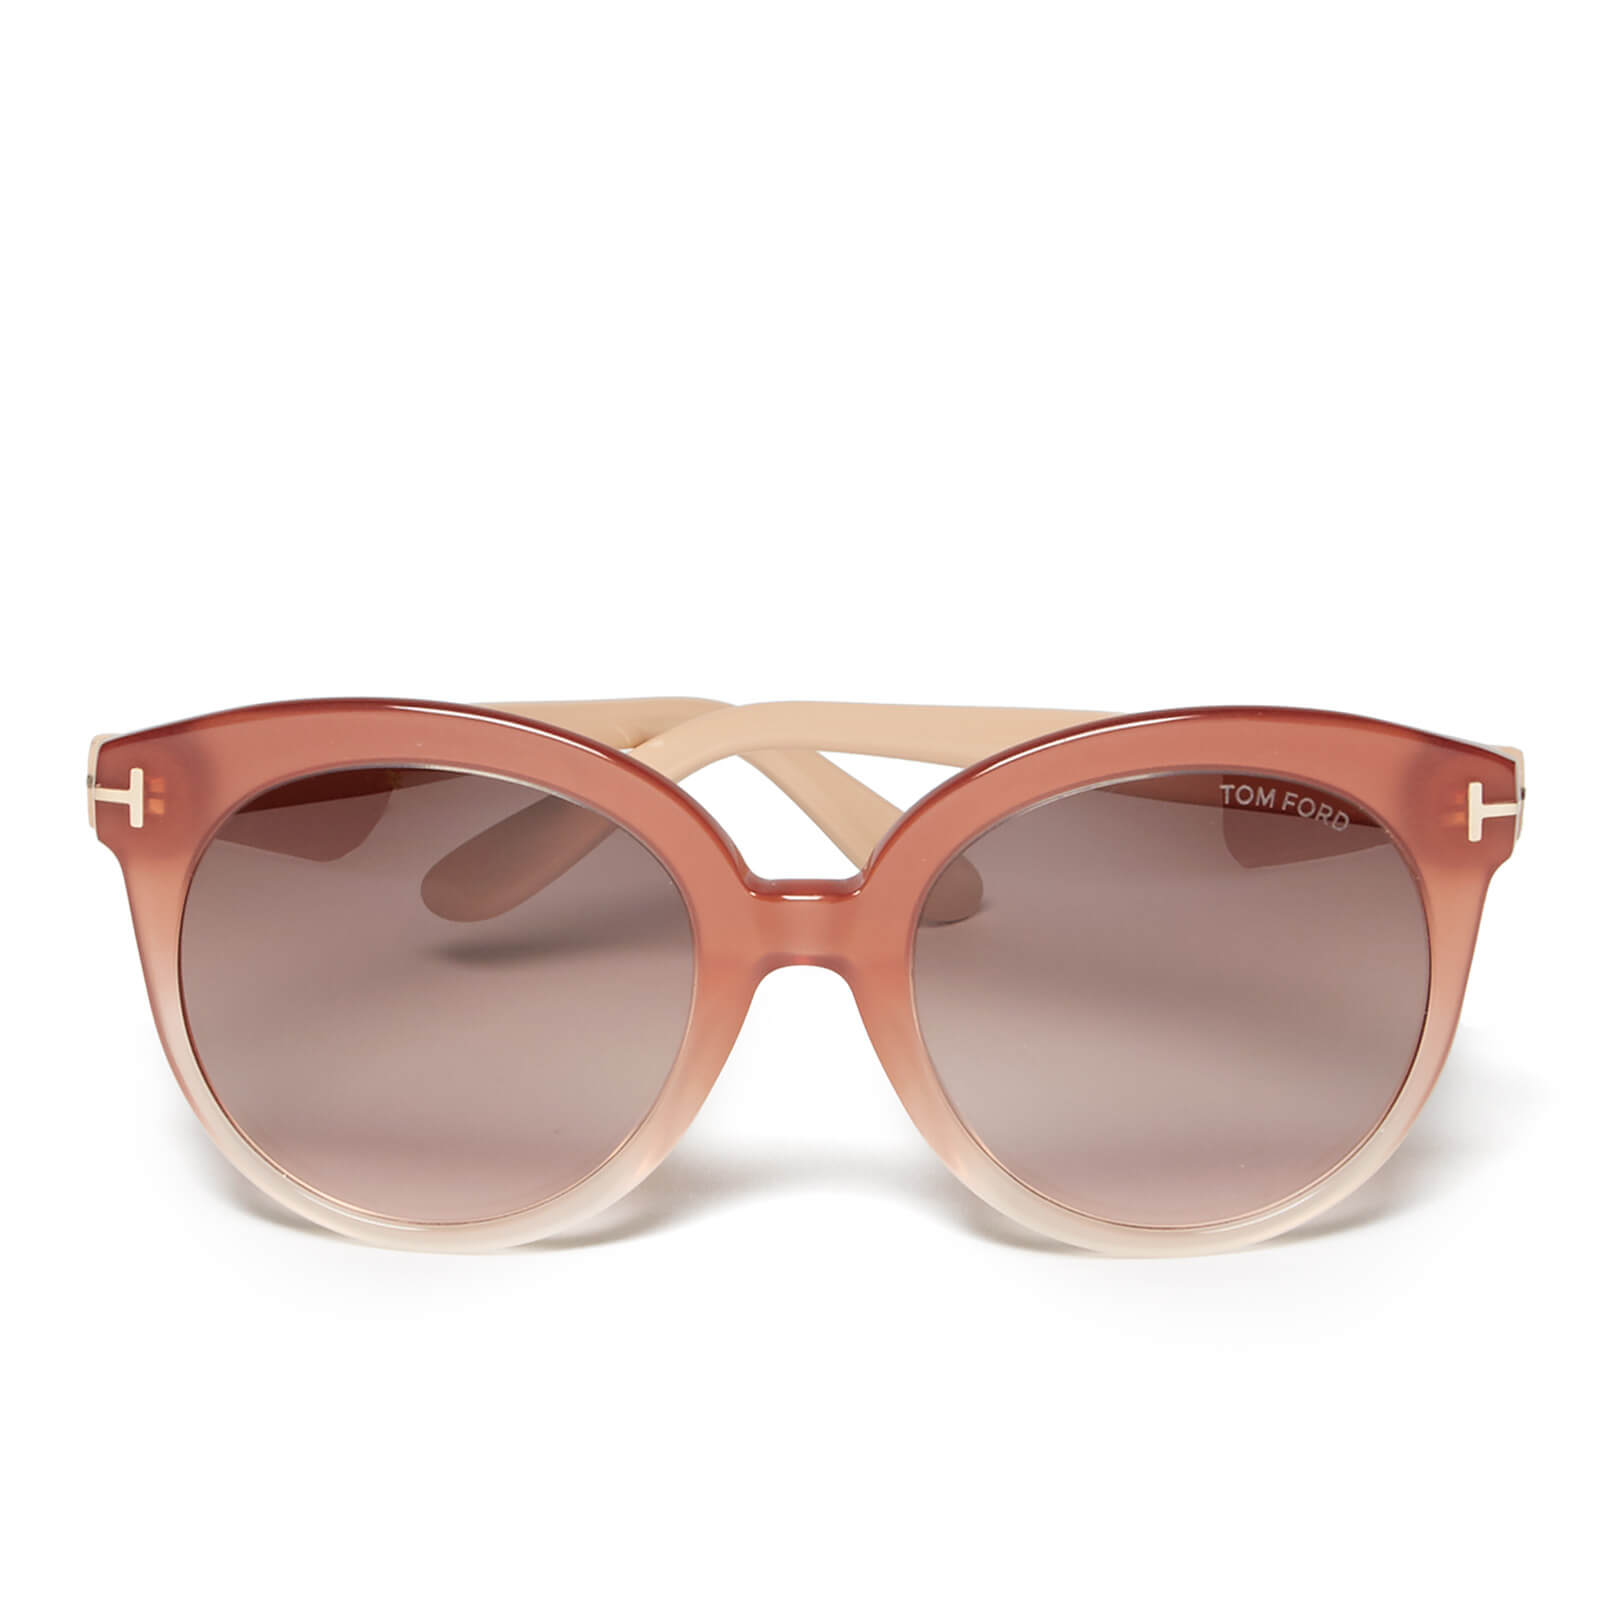 cefbe1620e Tom Ford Women s Monica Sunglasses - Pink - Free UK Delivery over £50